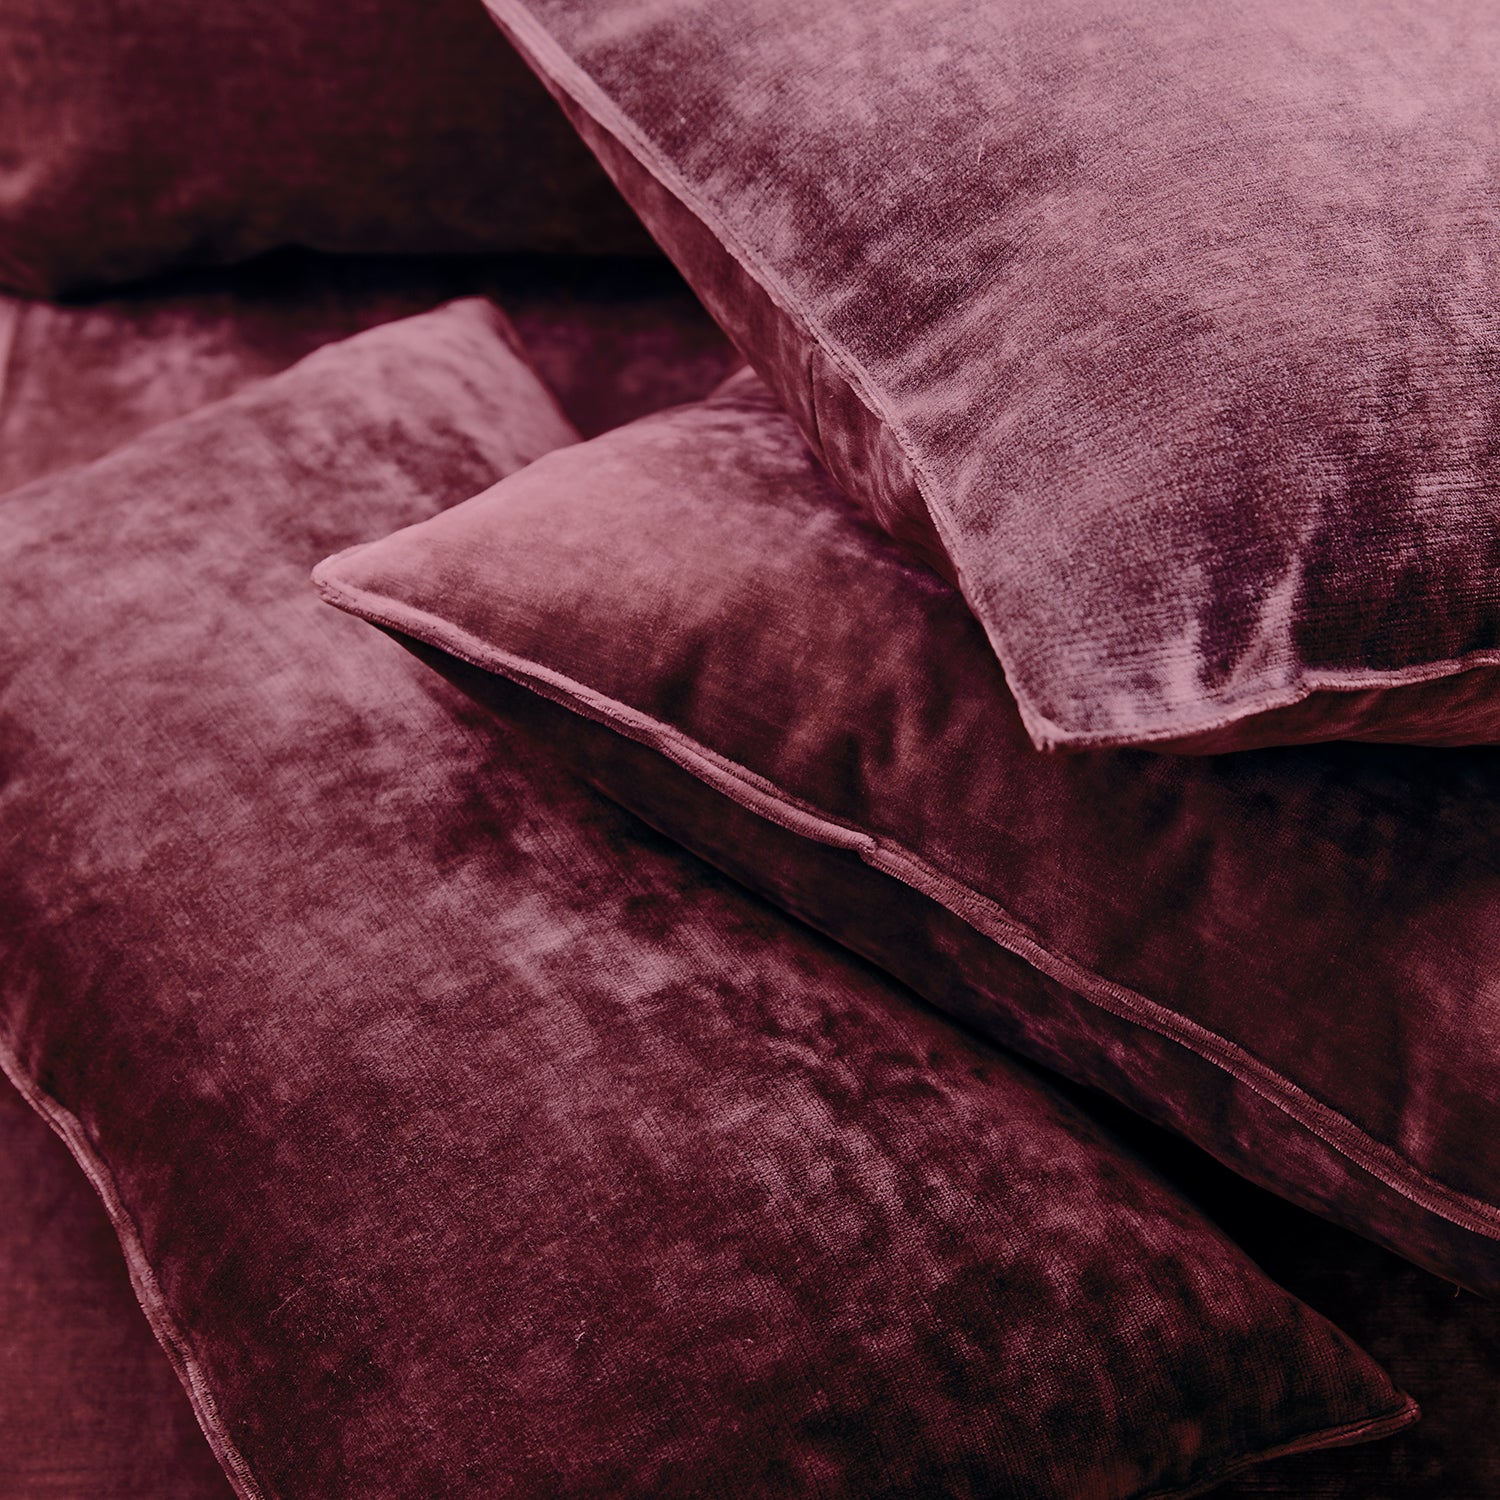 Cushions in a berry coloured stain resistant crushed velvet fabric, perfect for berry crushed velvet sofa or curtains